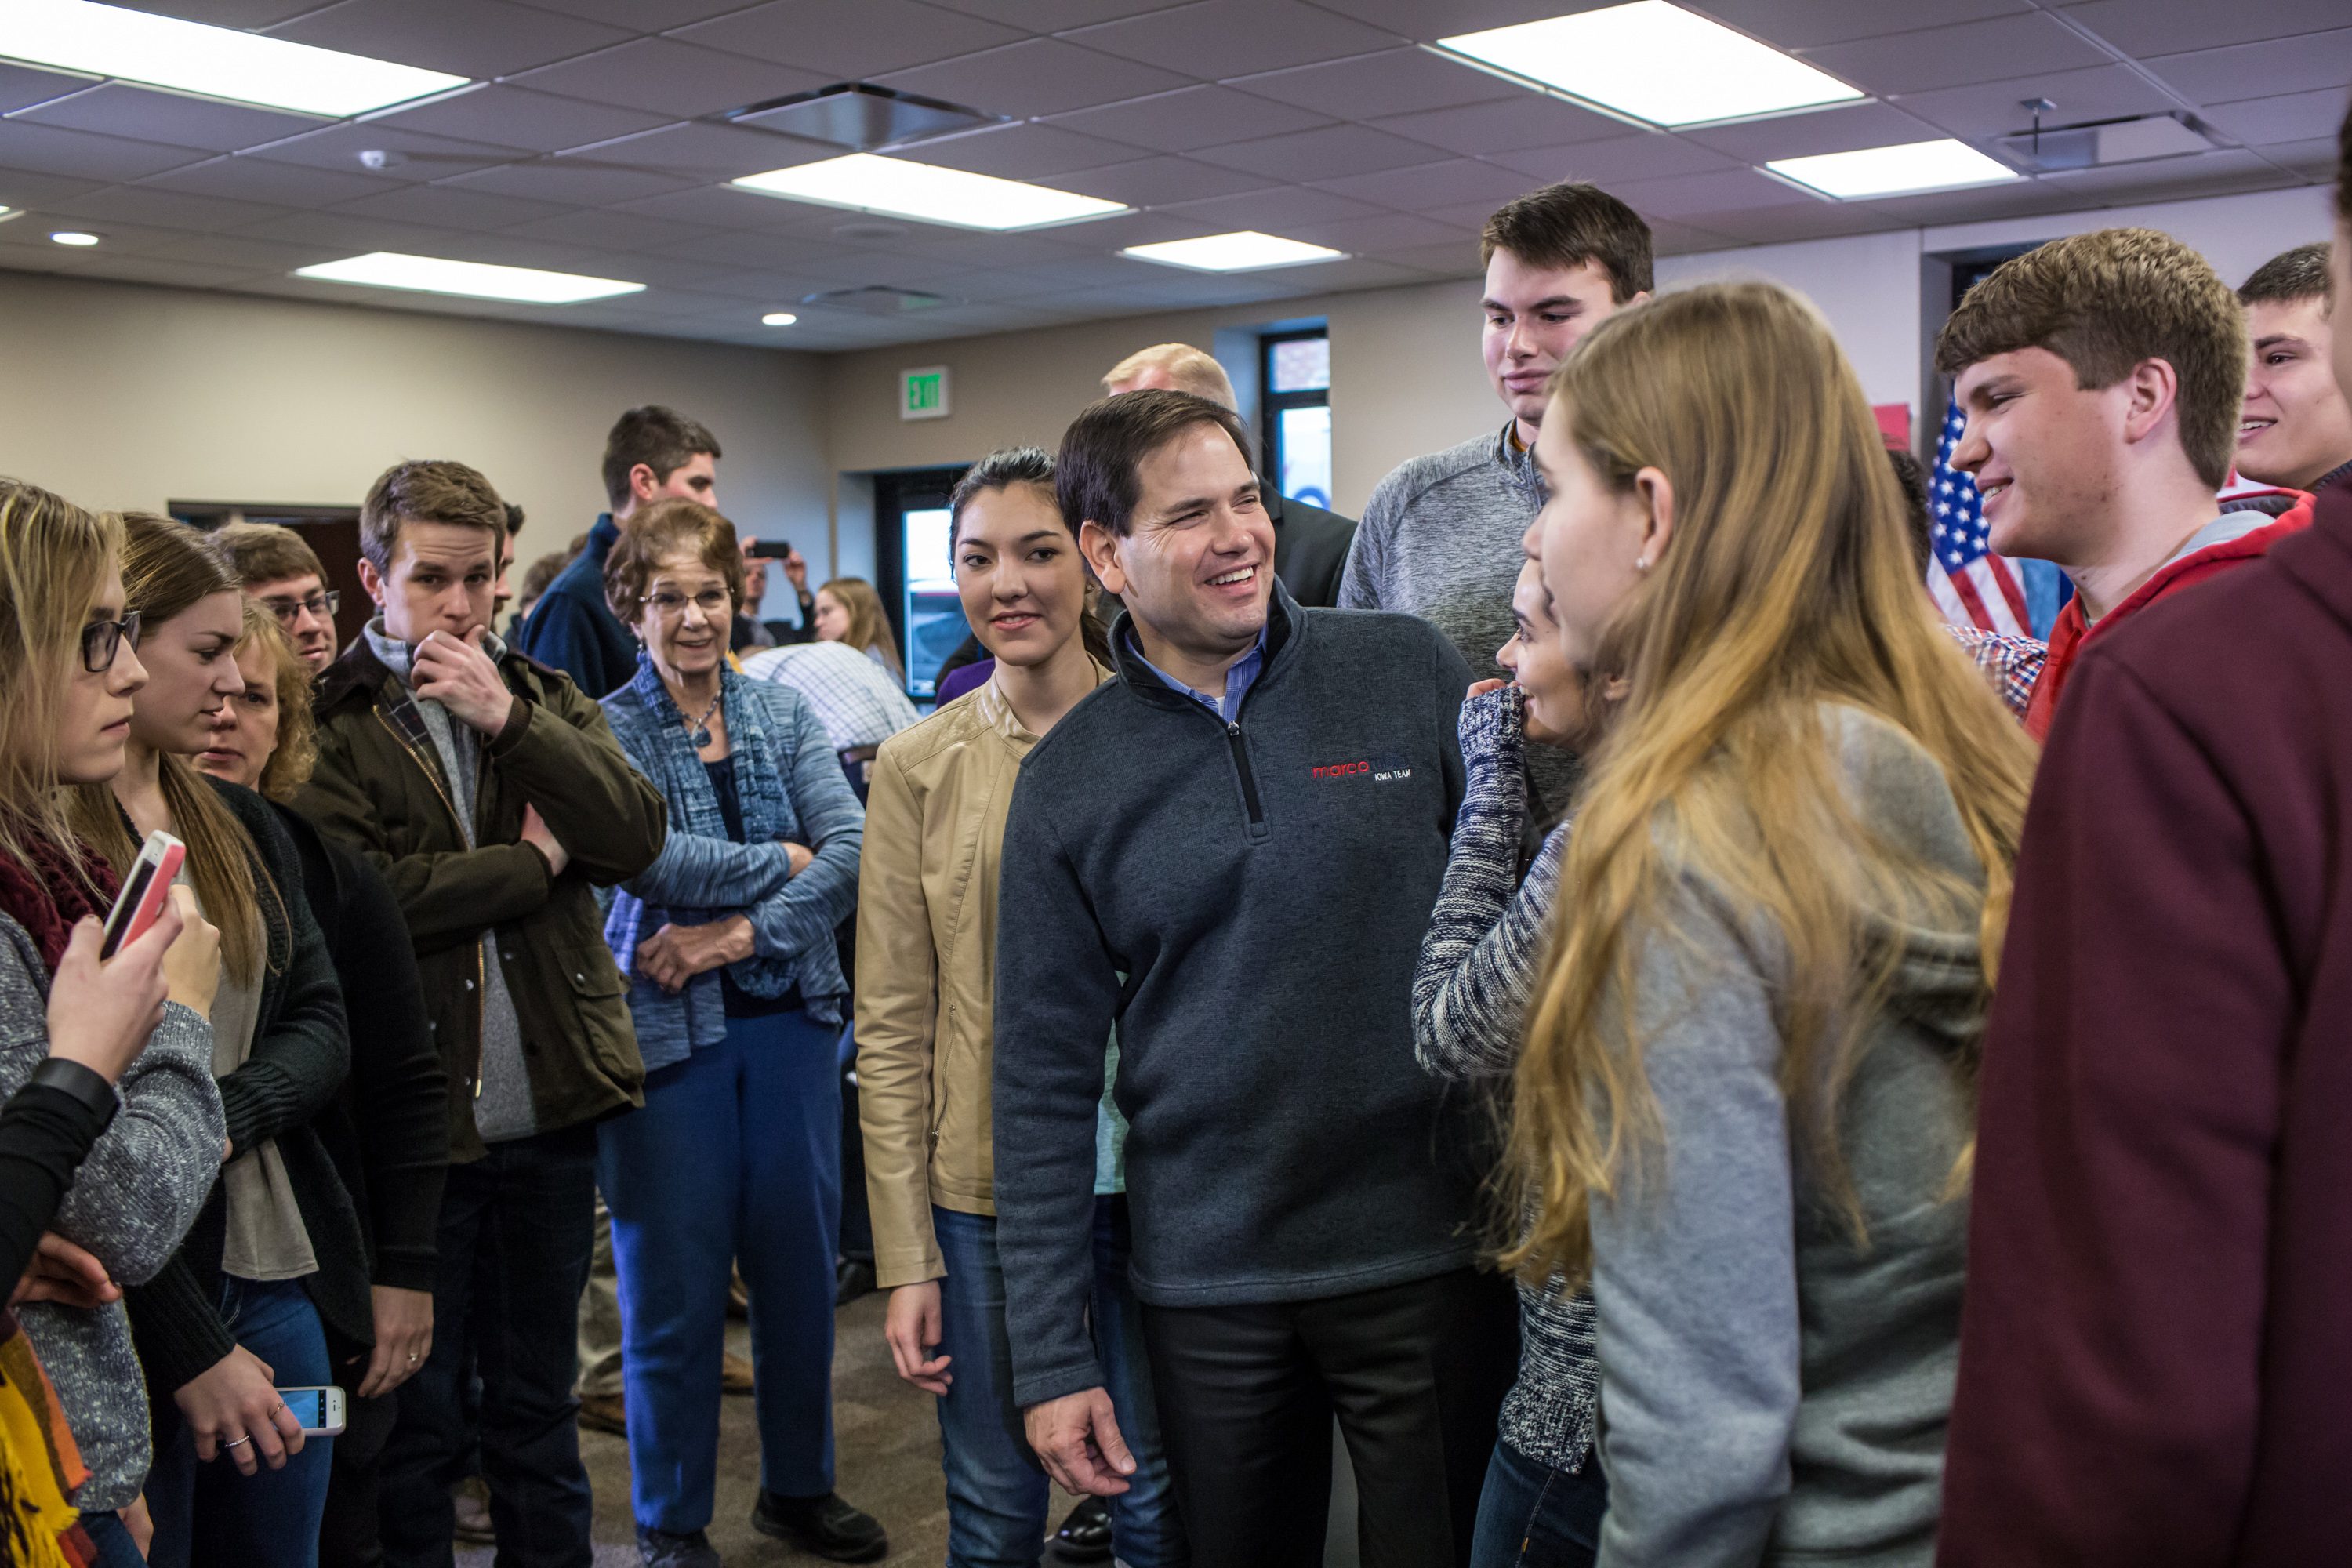 Marco Rubio (R-FL) Campaigns In Iowa Ahead Of State's Caucus